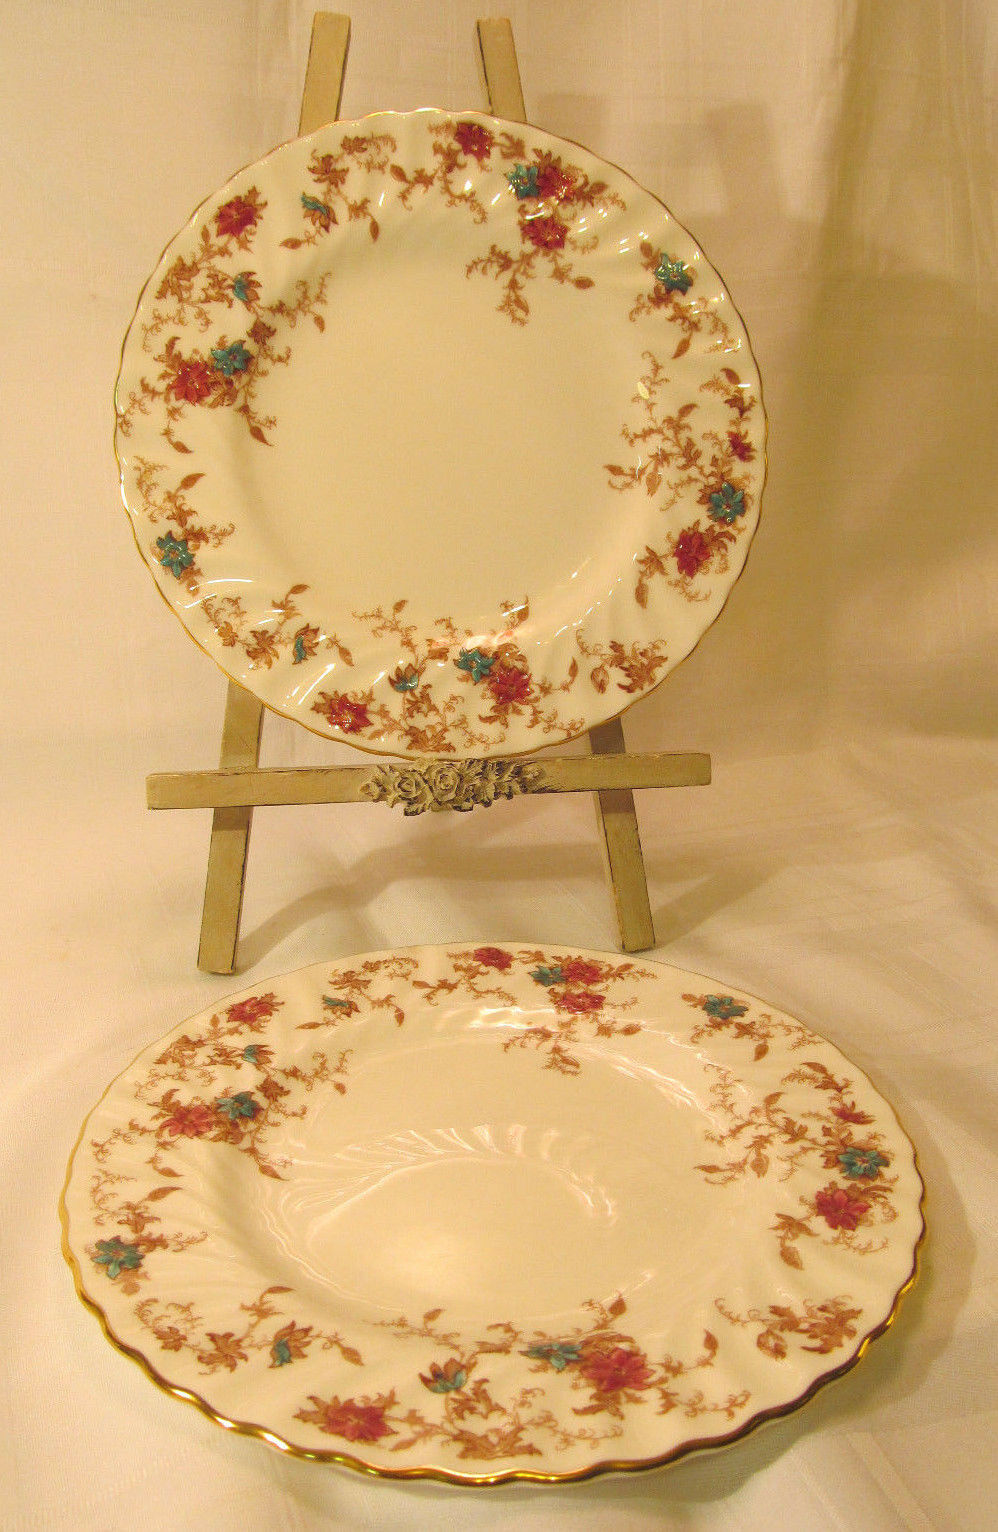 Surprising Discontinued Minton China Images - Best Image Engine ...